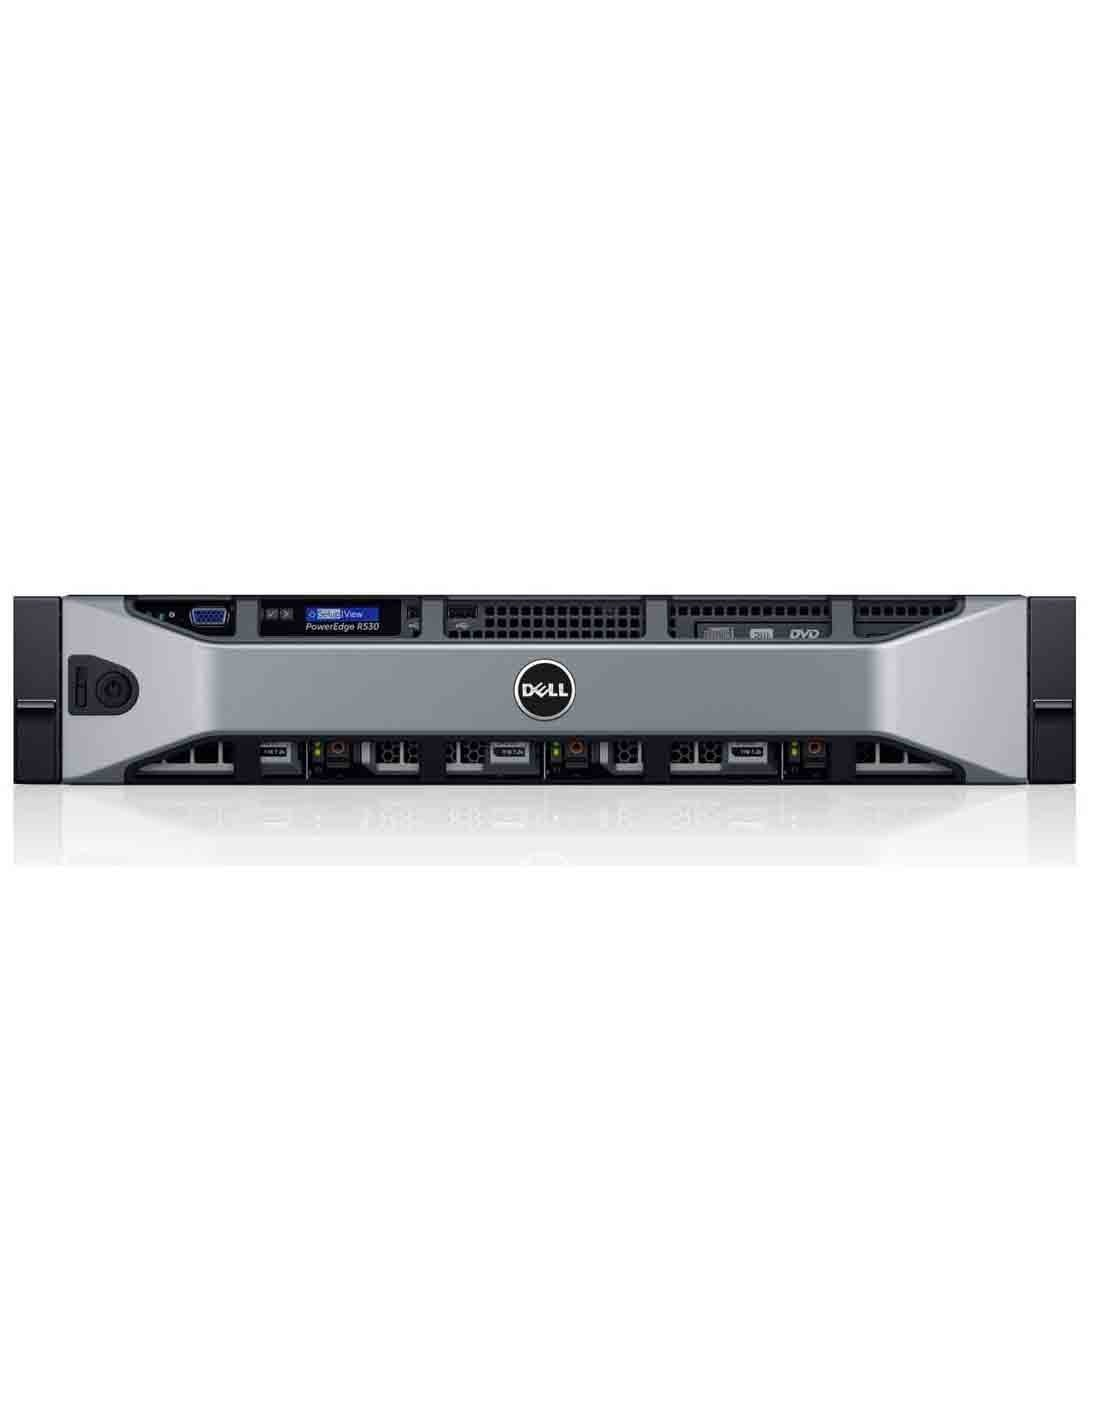 Dell PowerEdge R530 Rack Server Intel Xeon E5-2620v3 with best deal options.